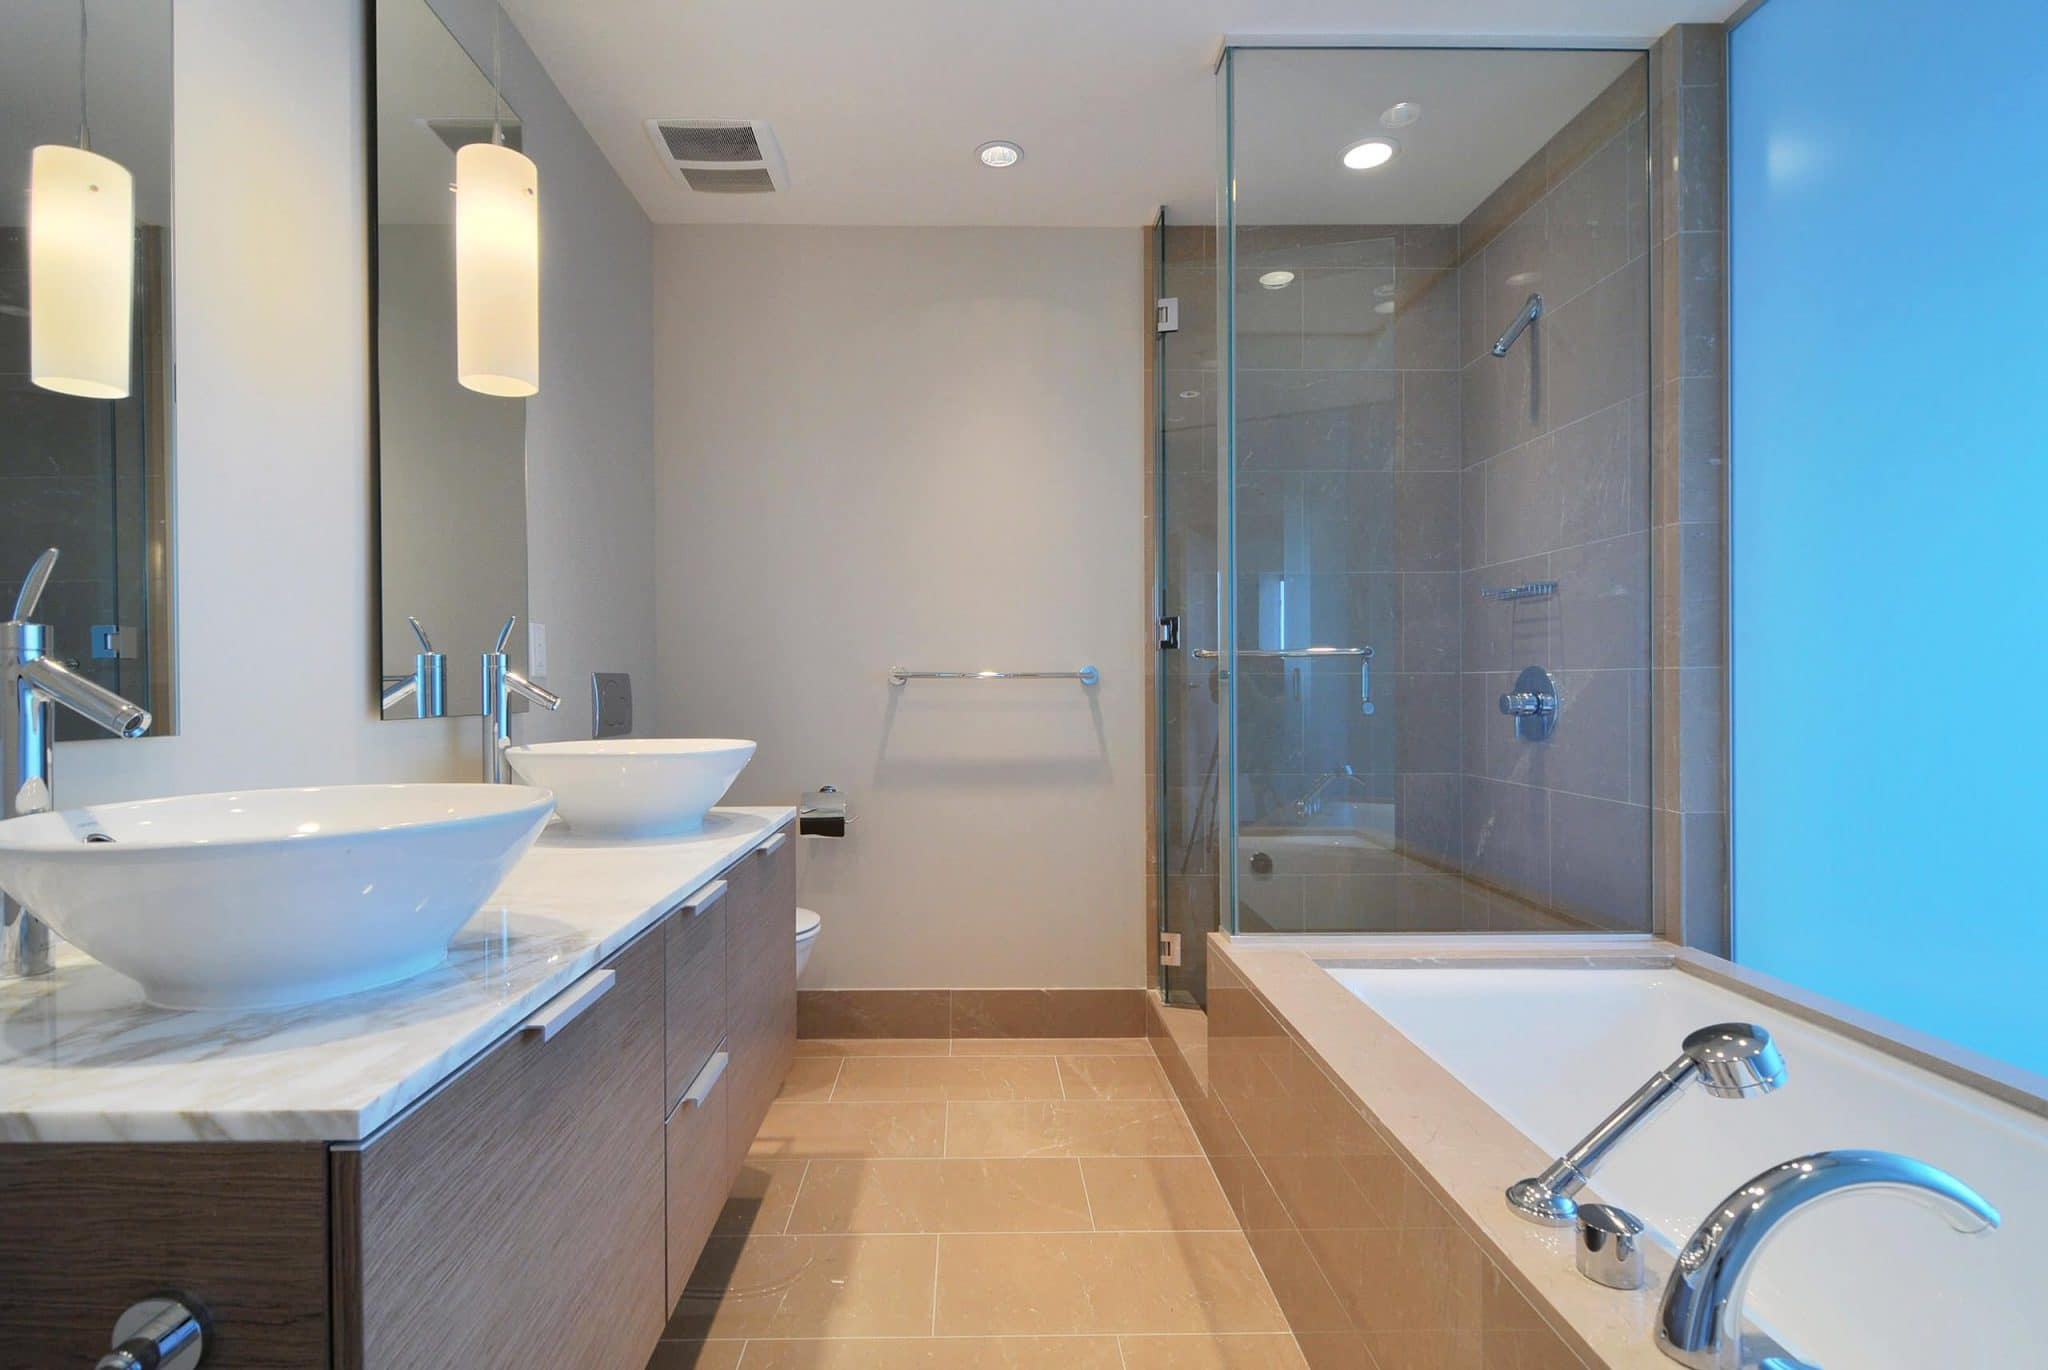 A Bathroom S Layout Best Online Cabinets